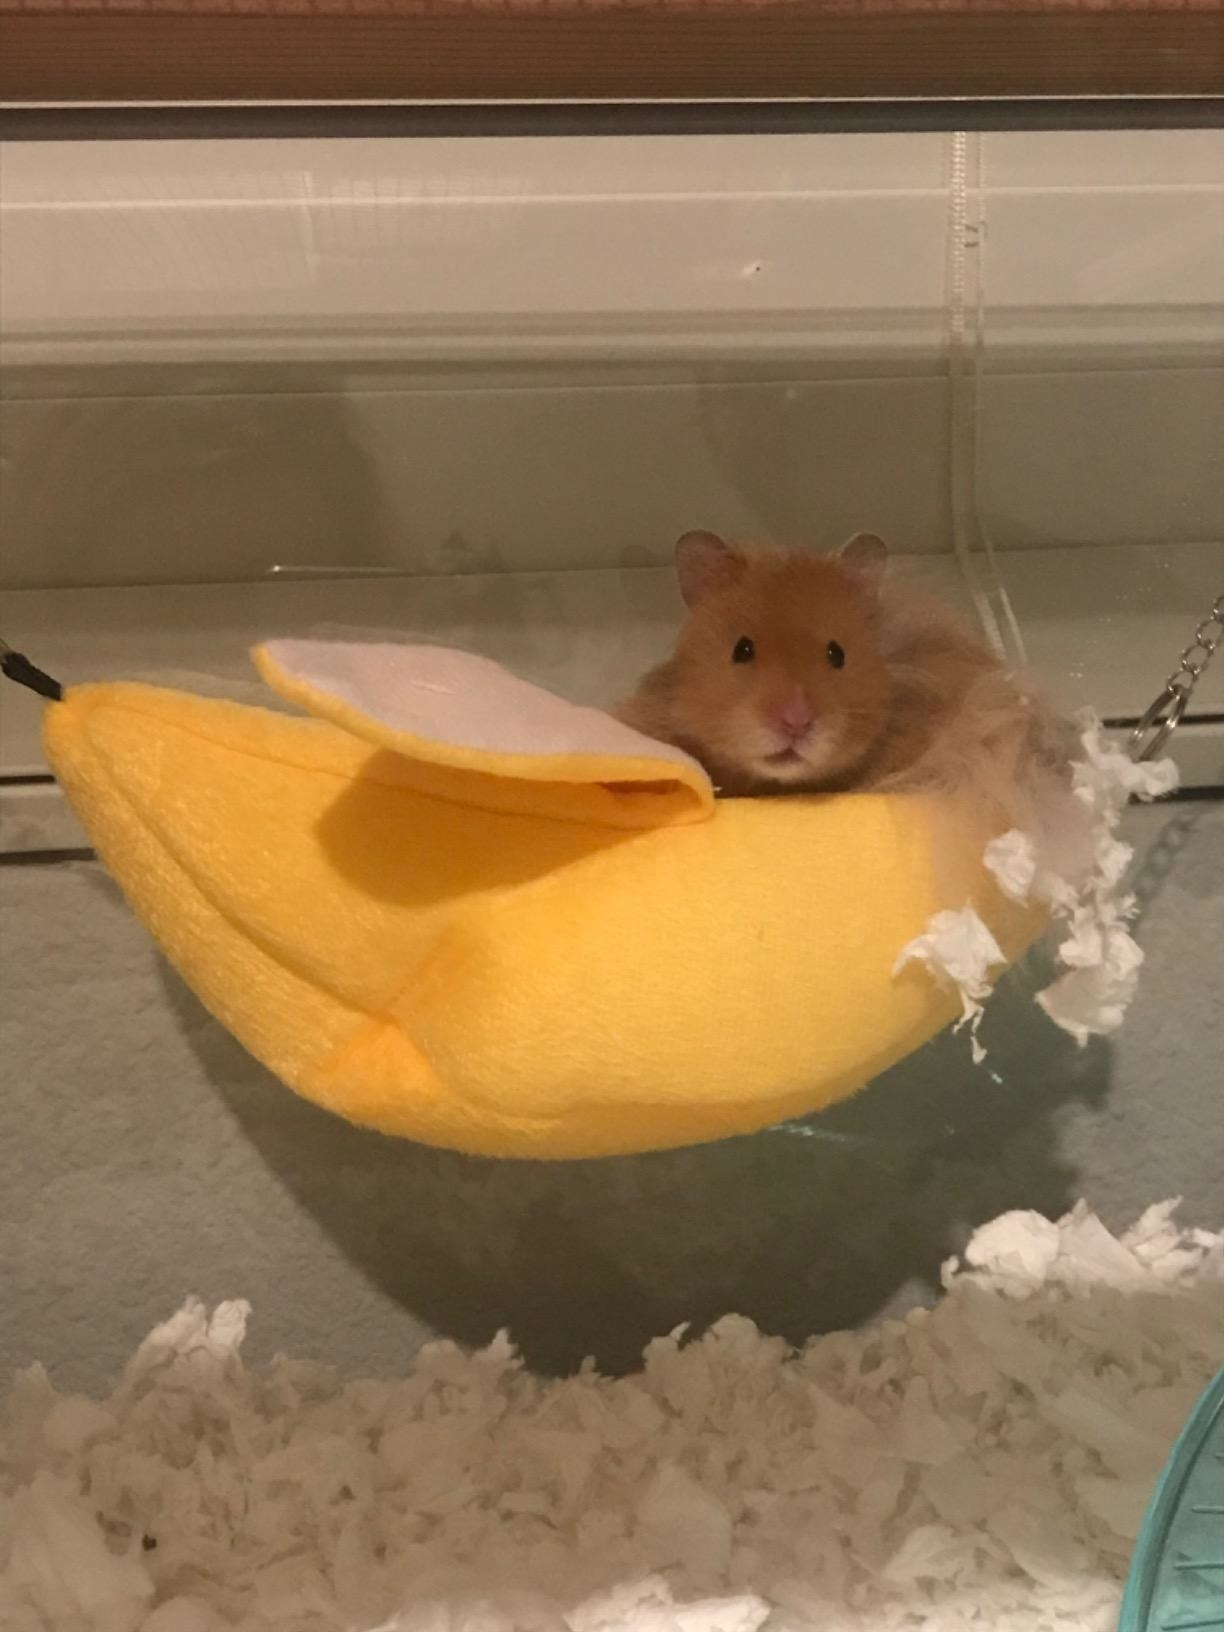 a reviewer's hamster in the yellow hammock